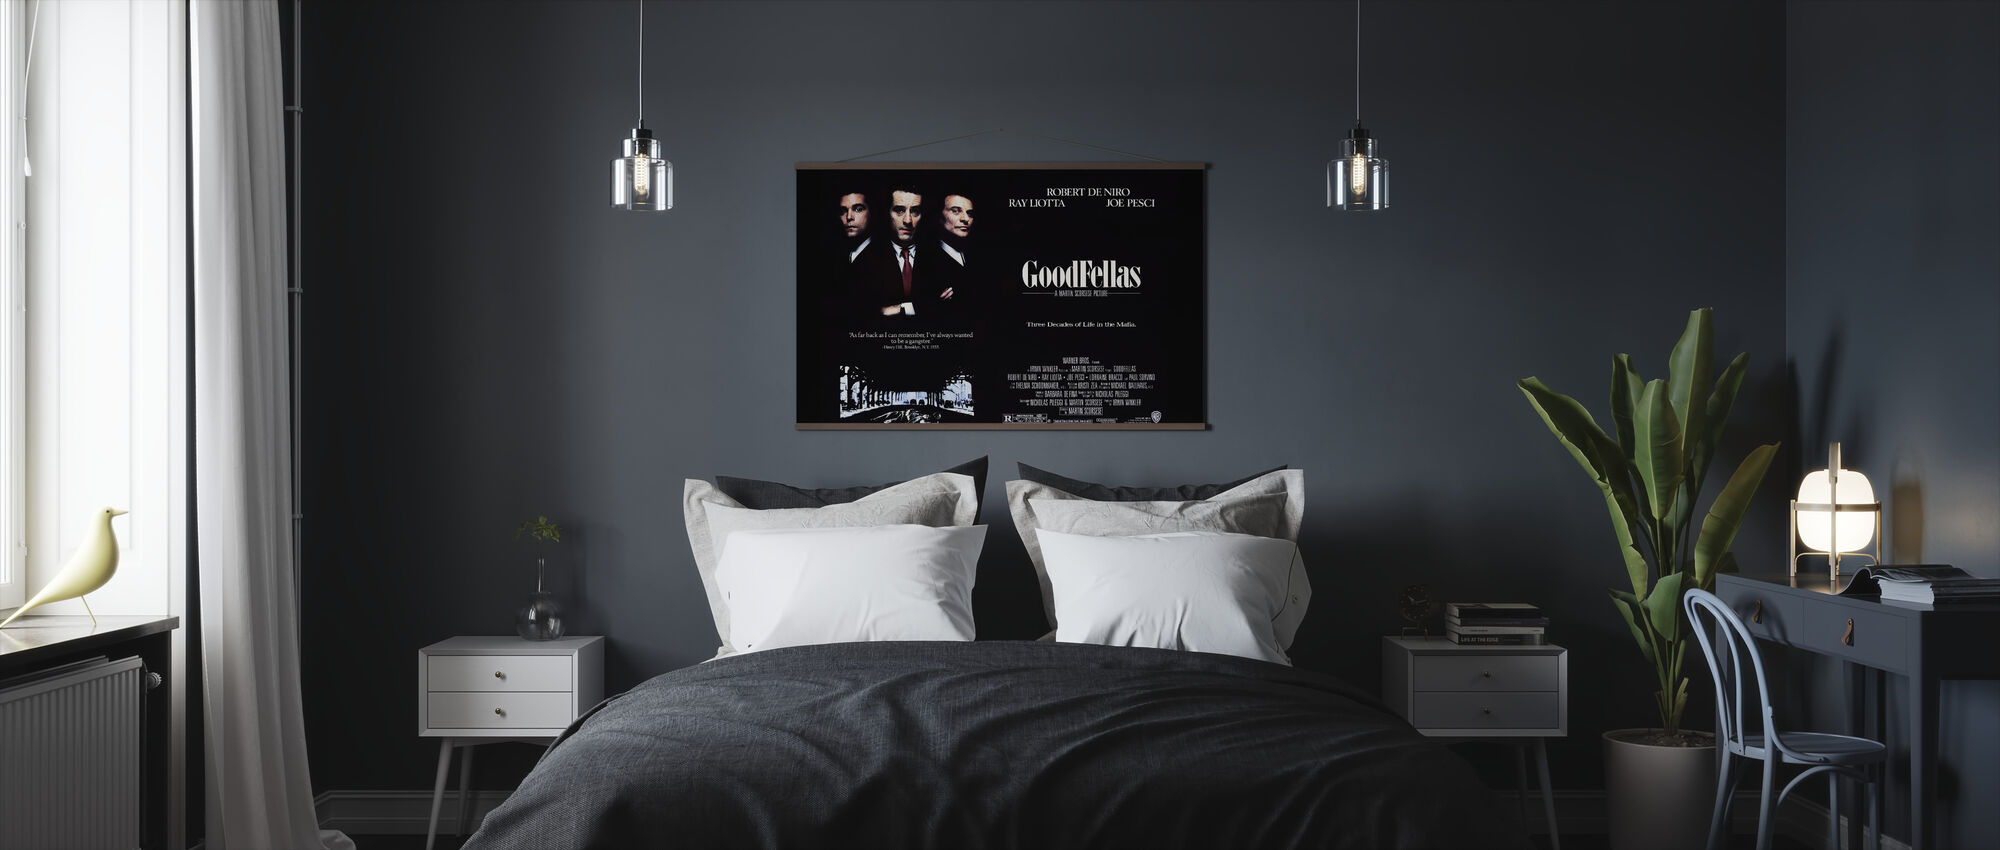 Goodfellas - Poster - Bedroom